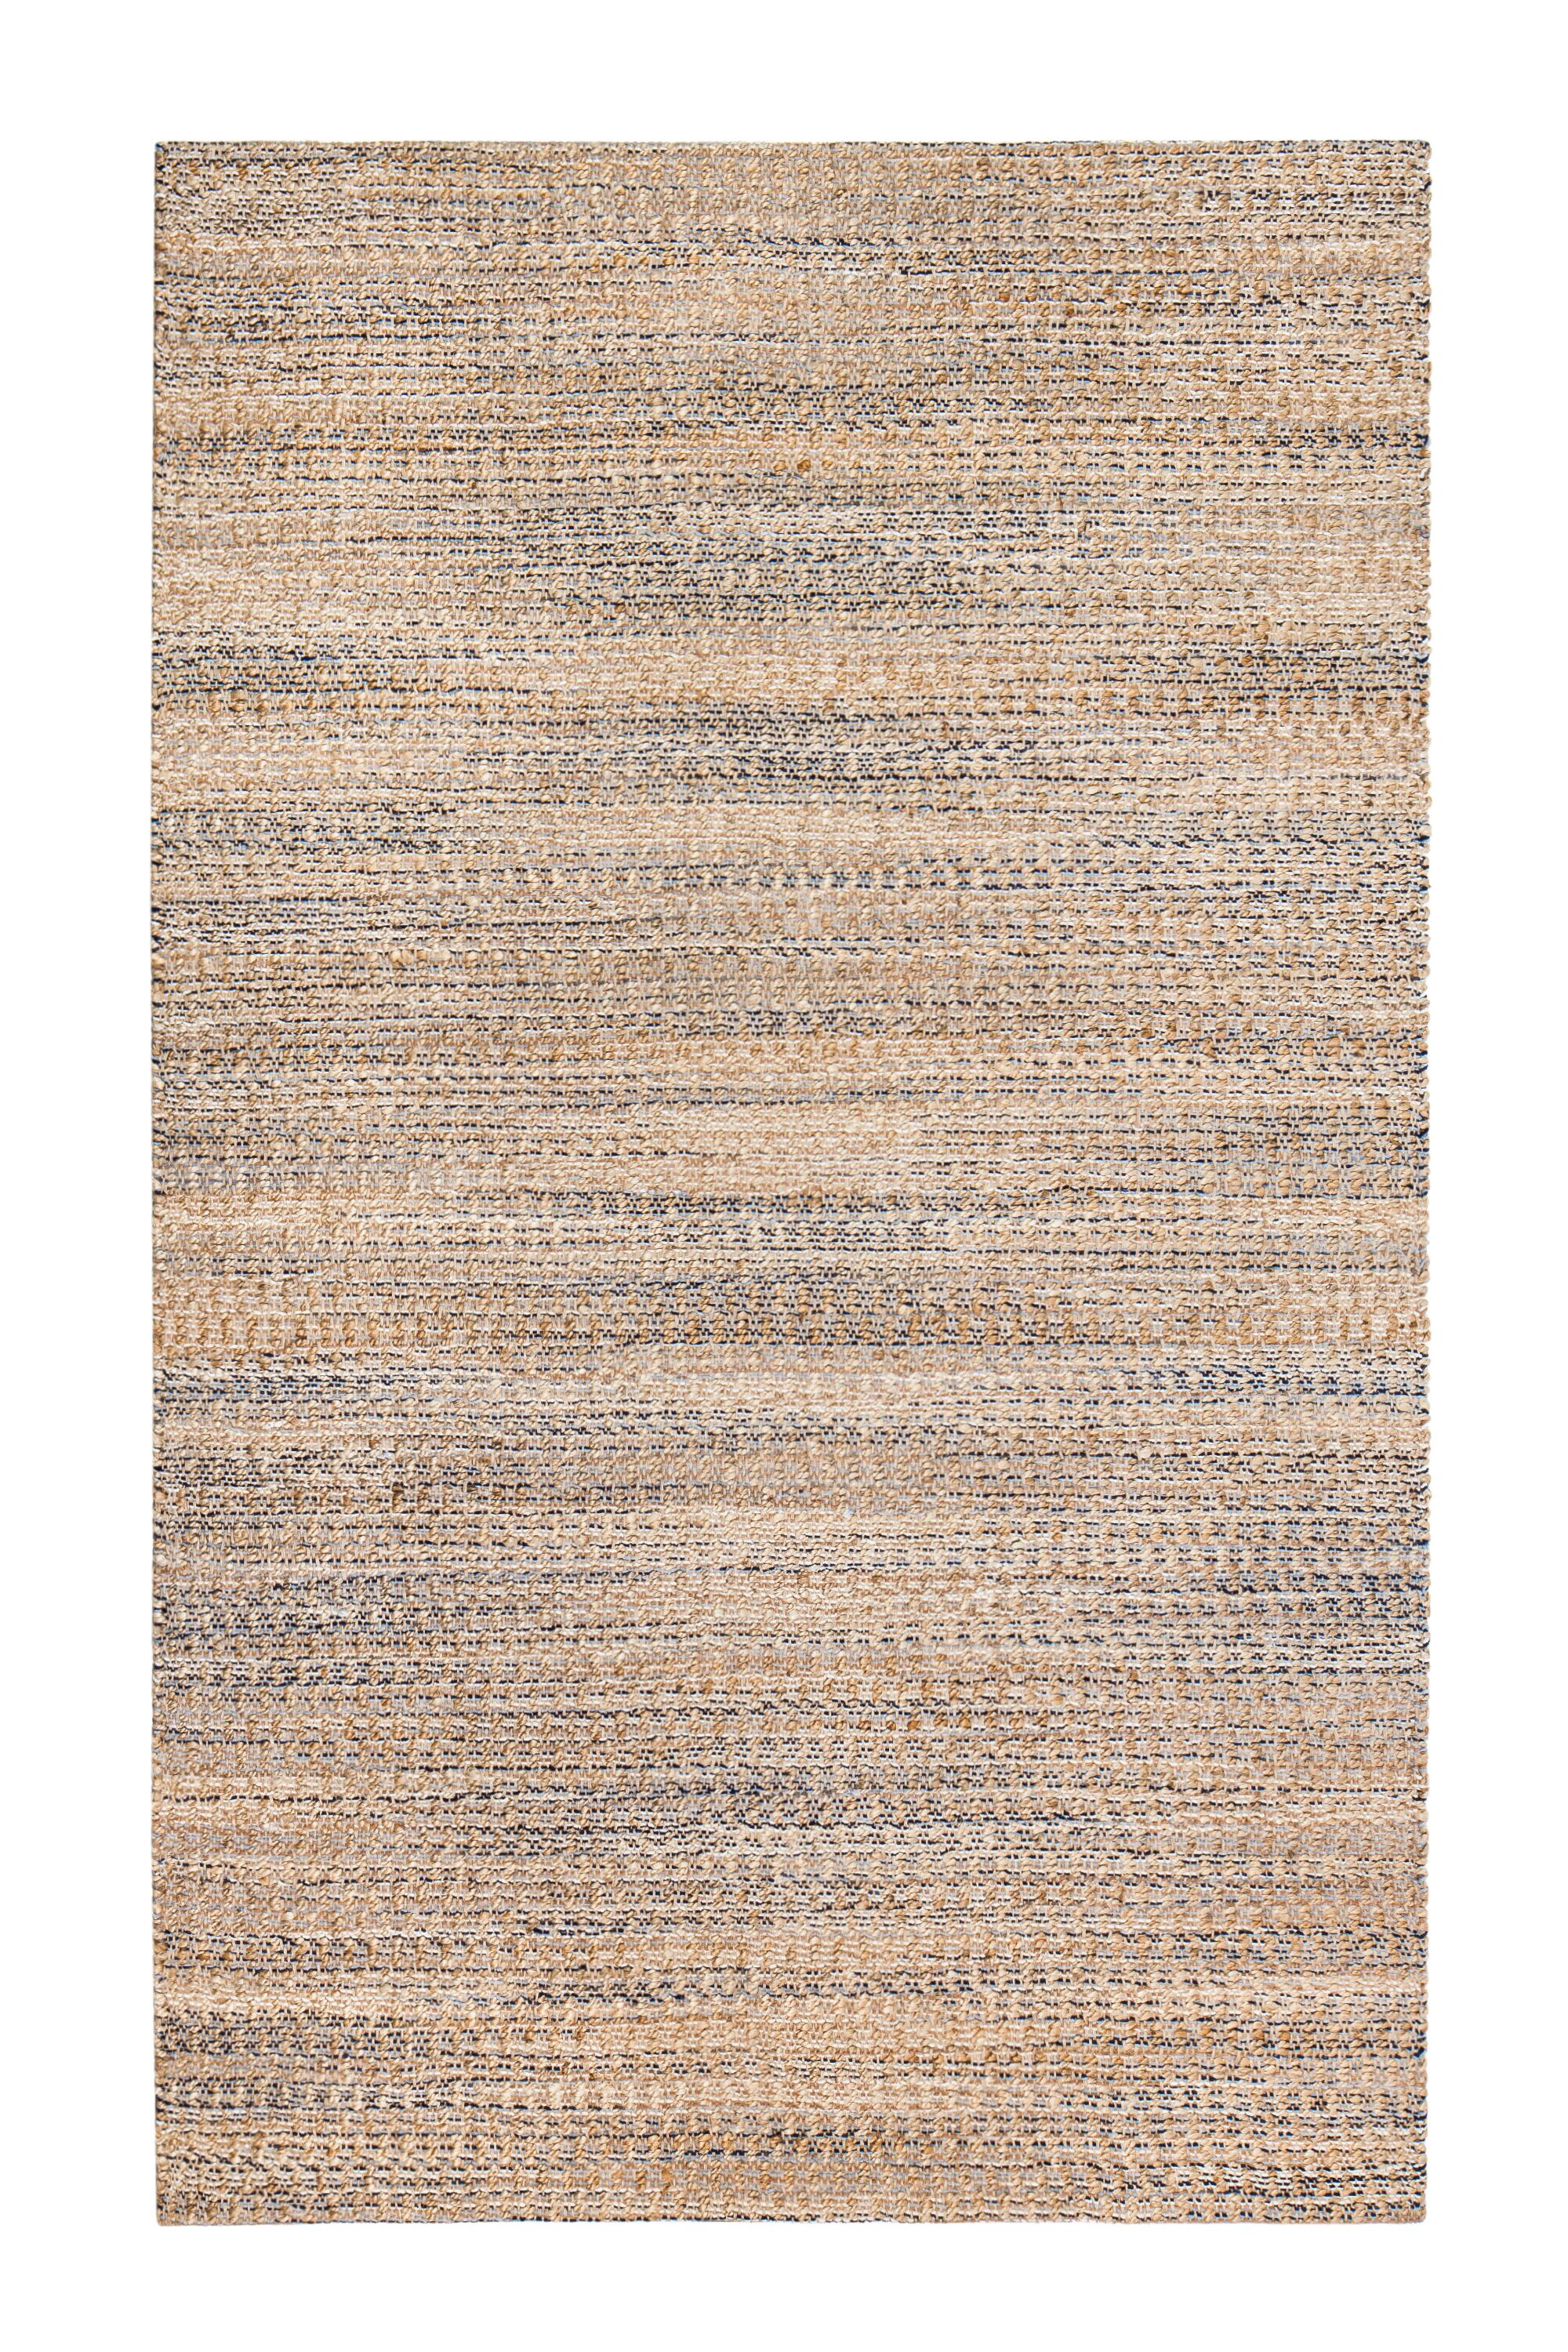 Lynn Haven Hand-Woven Tan/Ivory/Blue Area Rug Rug Size: 8' x 10'